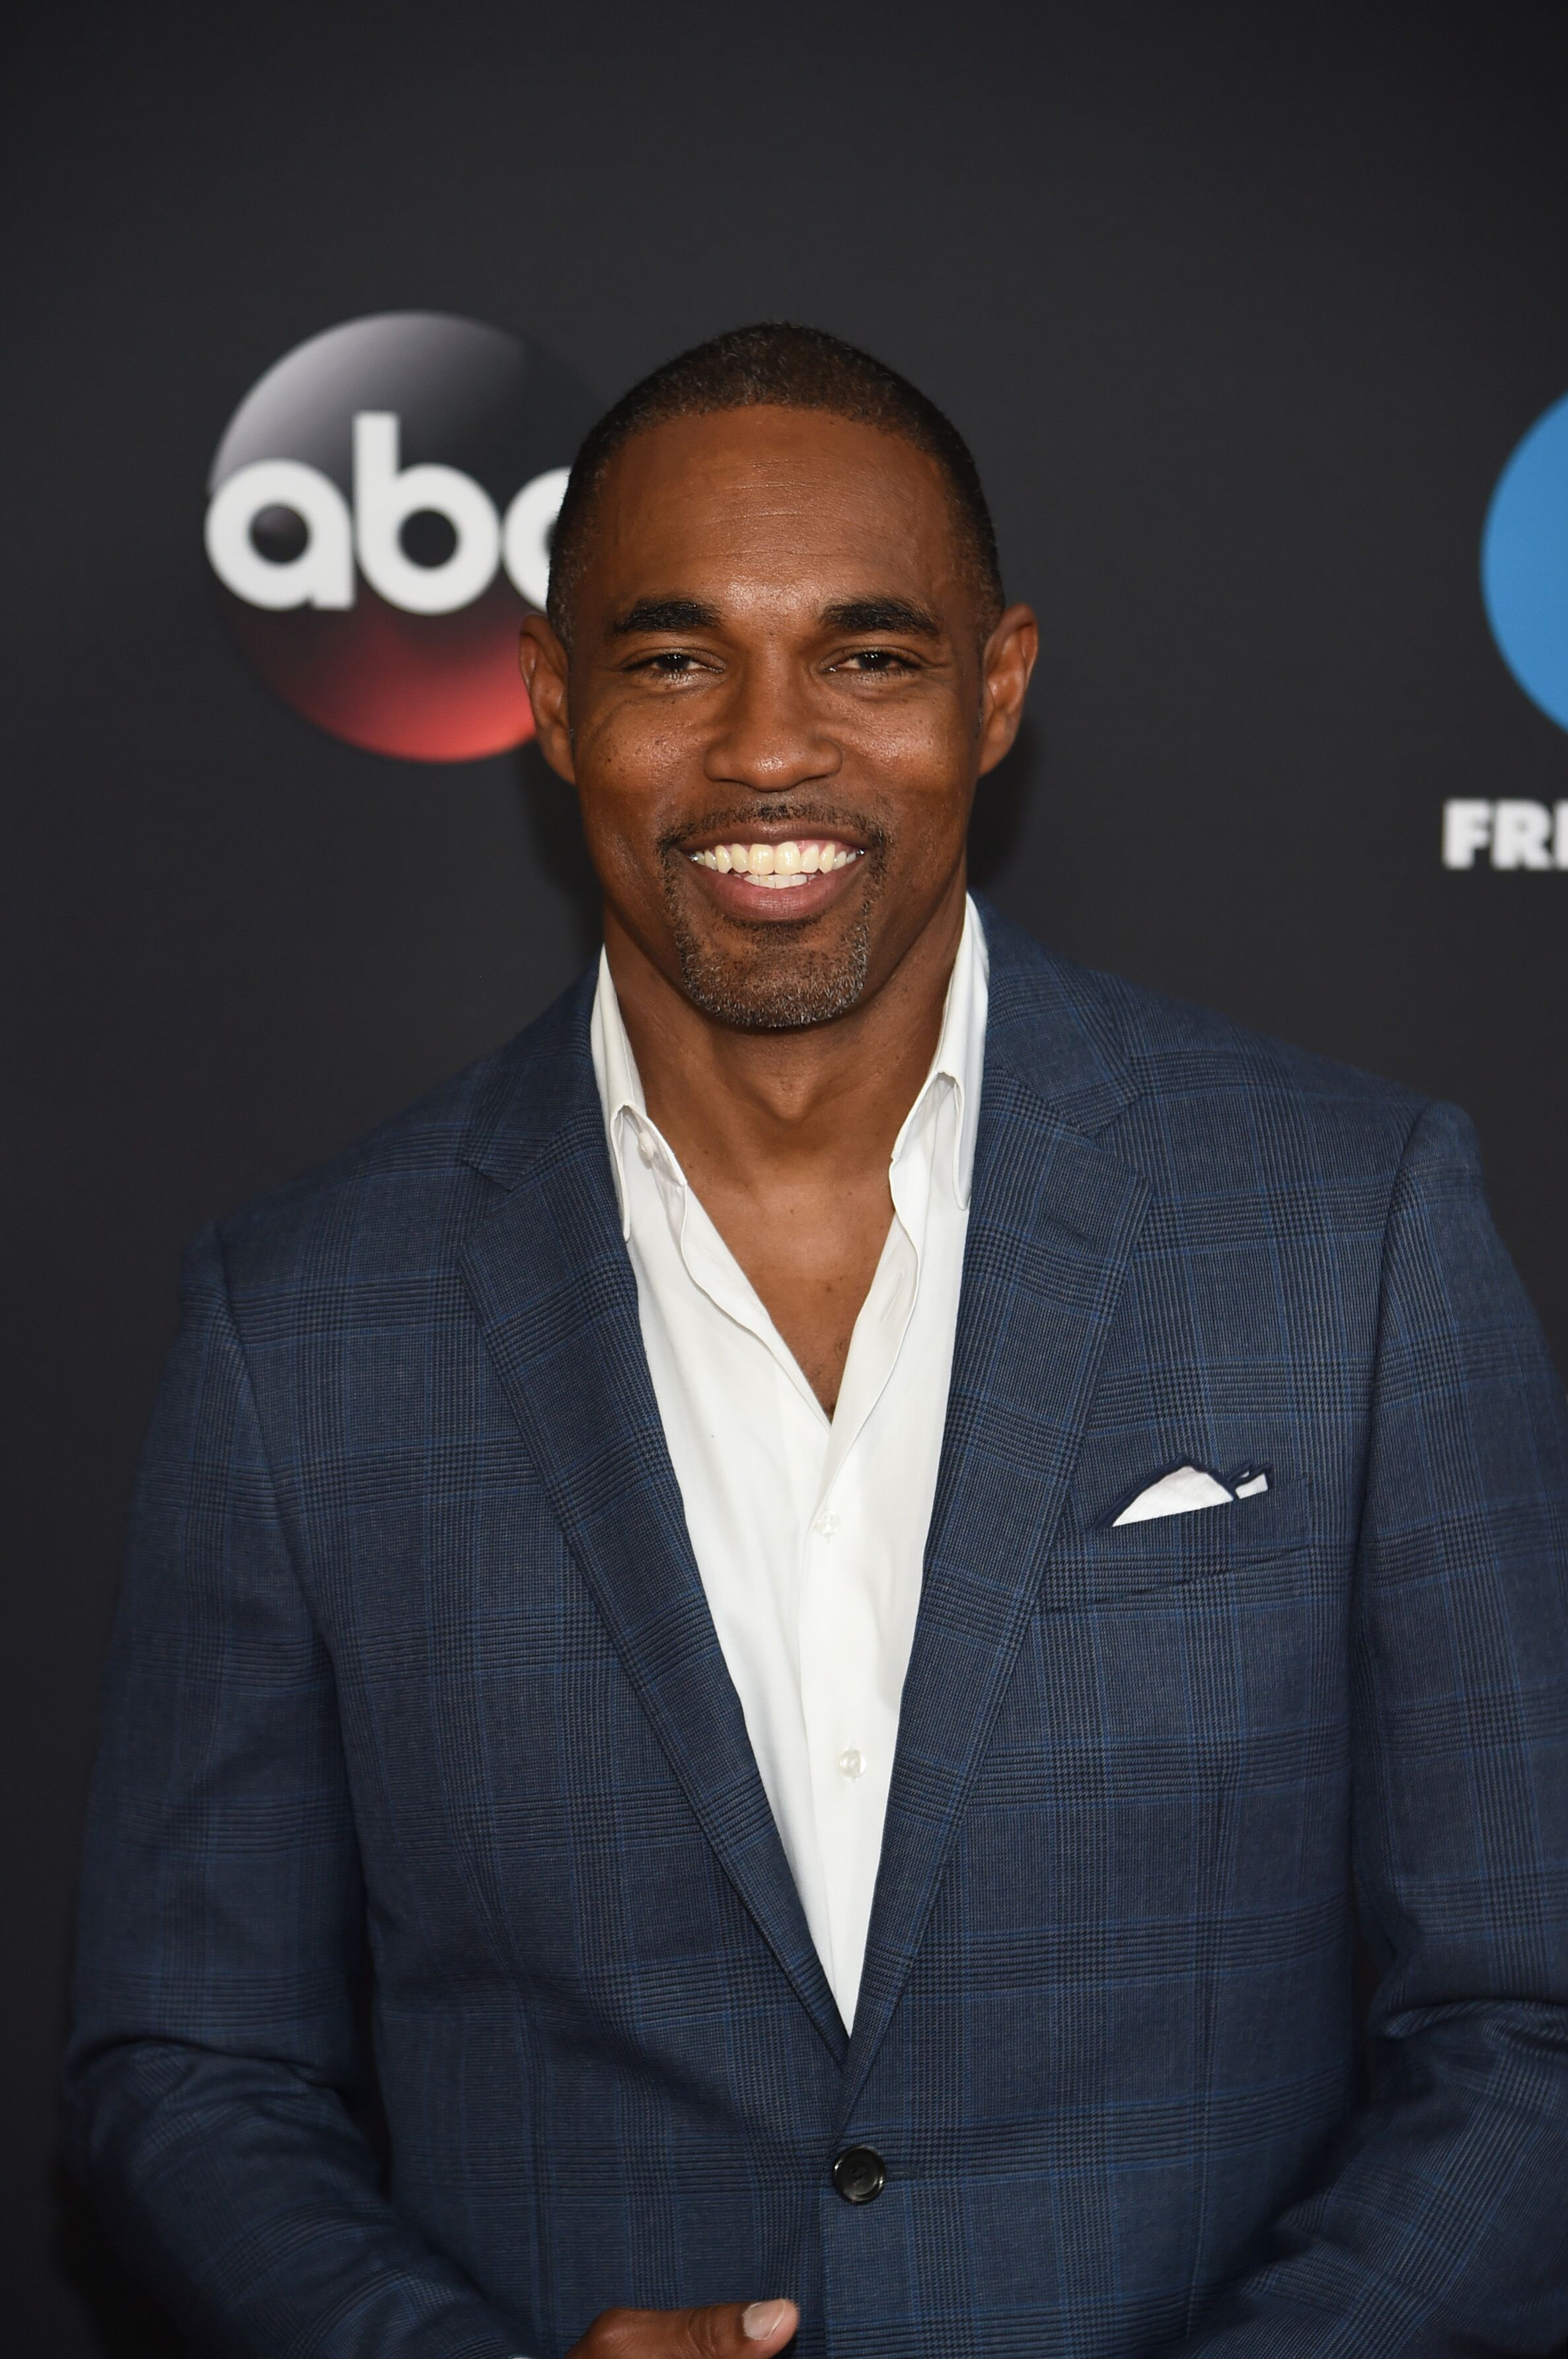 Jason George of Station 19 attends during 2018 Disney, ABC, Freeform Upfront at Tavern On The Green on May 15, 2018 in New York City. | Source: Getty Images